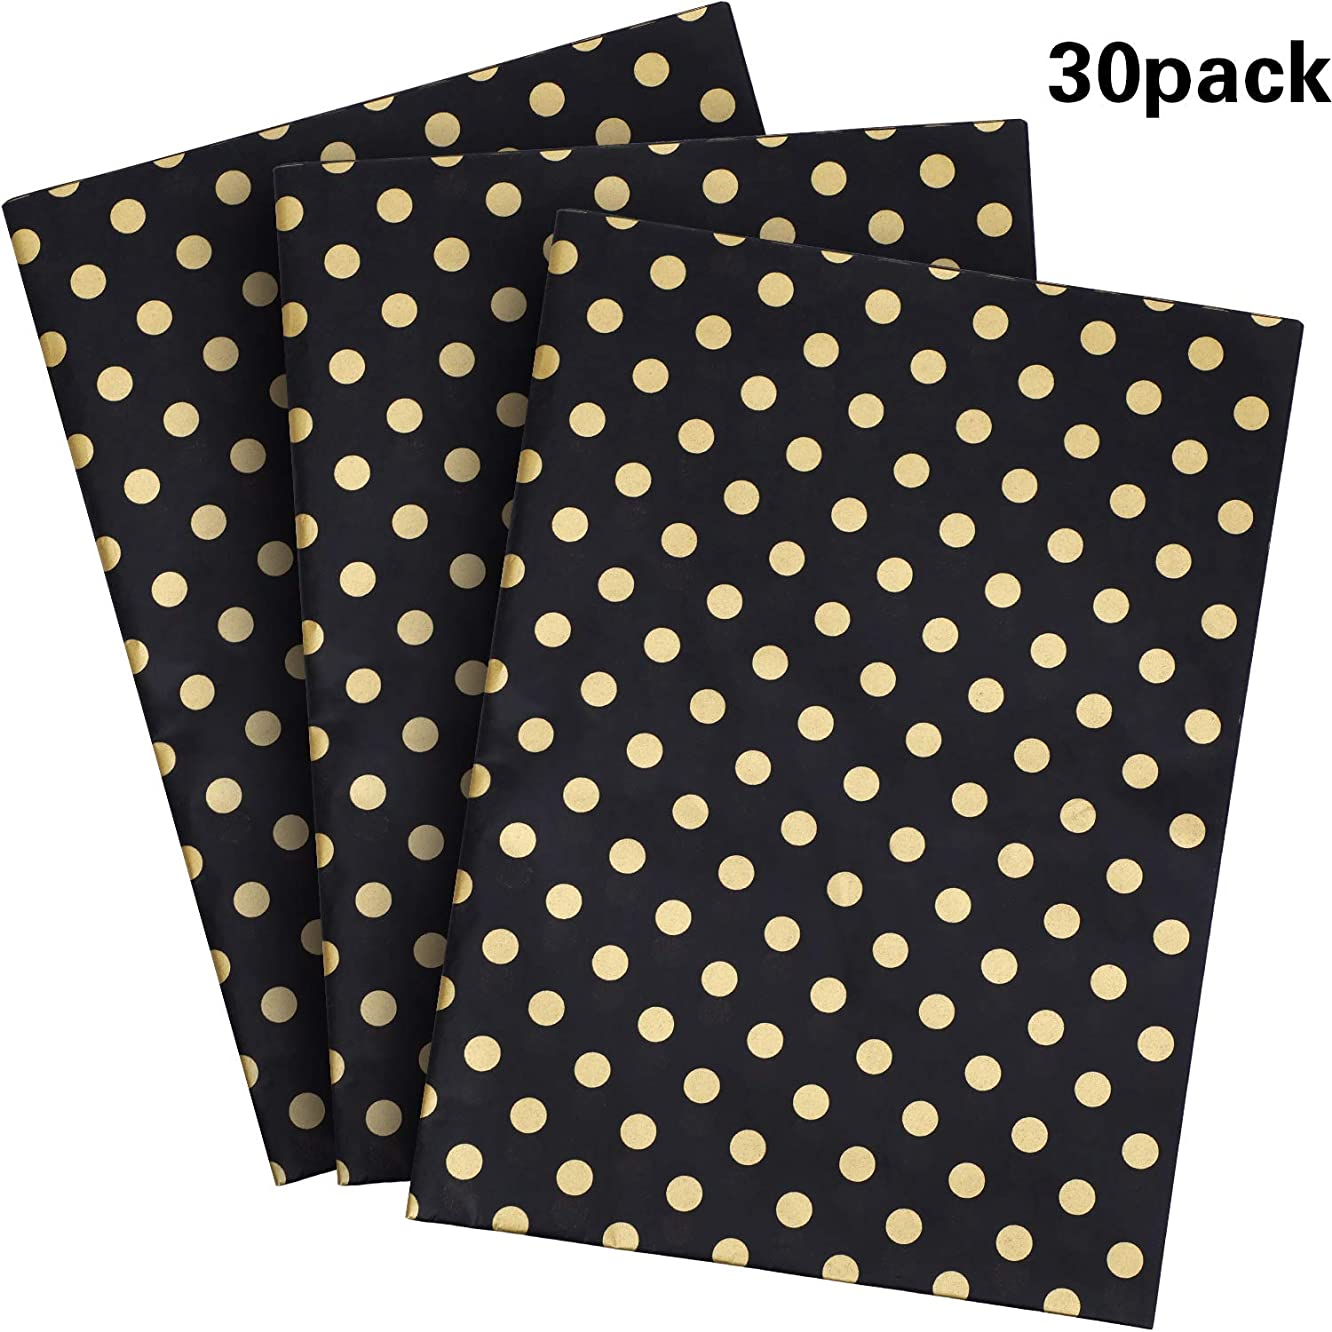 Shappy 30 Sheets Polka Dots Tissue Paper Dot Wrapping Paper for DIY Craft Wrapping Supplies (Color 2, 28 x 20 Inch) vzxqdswuy886169